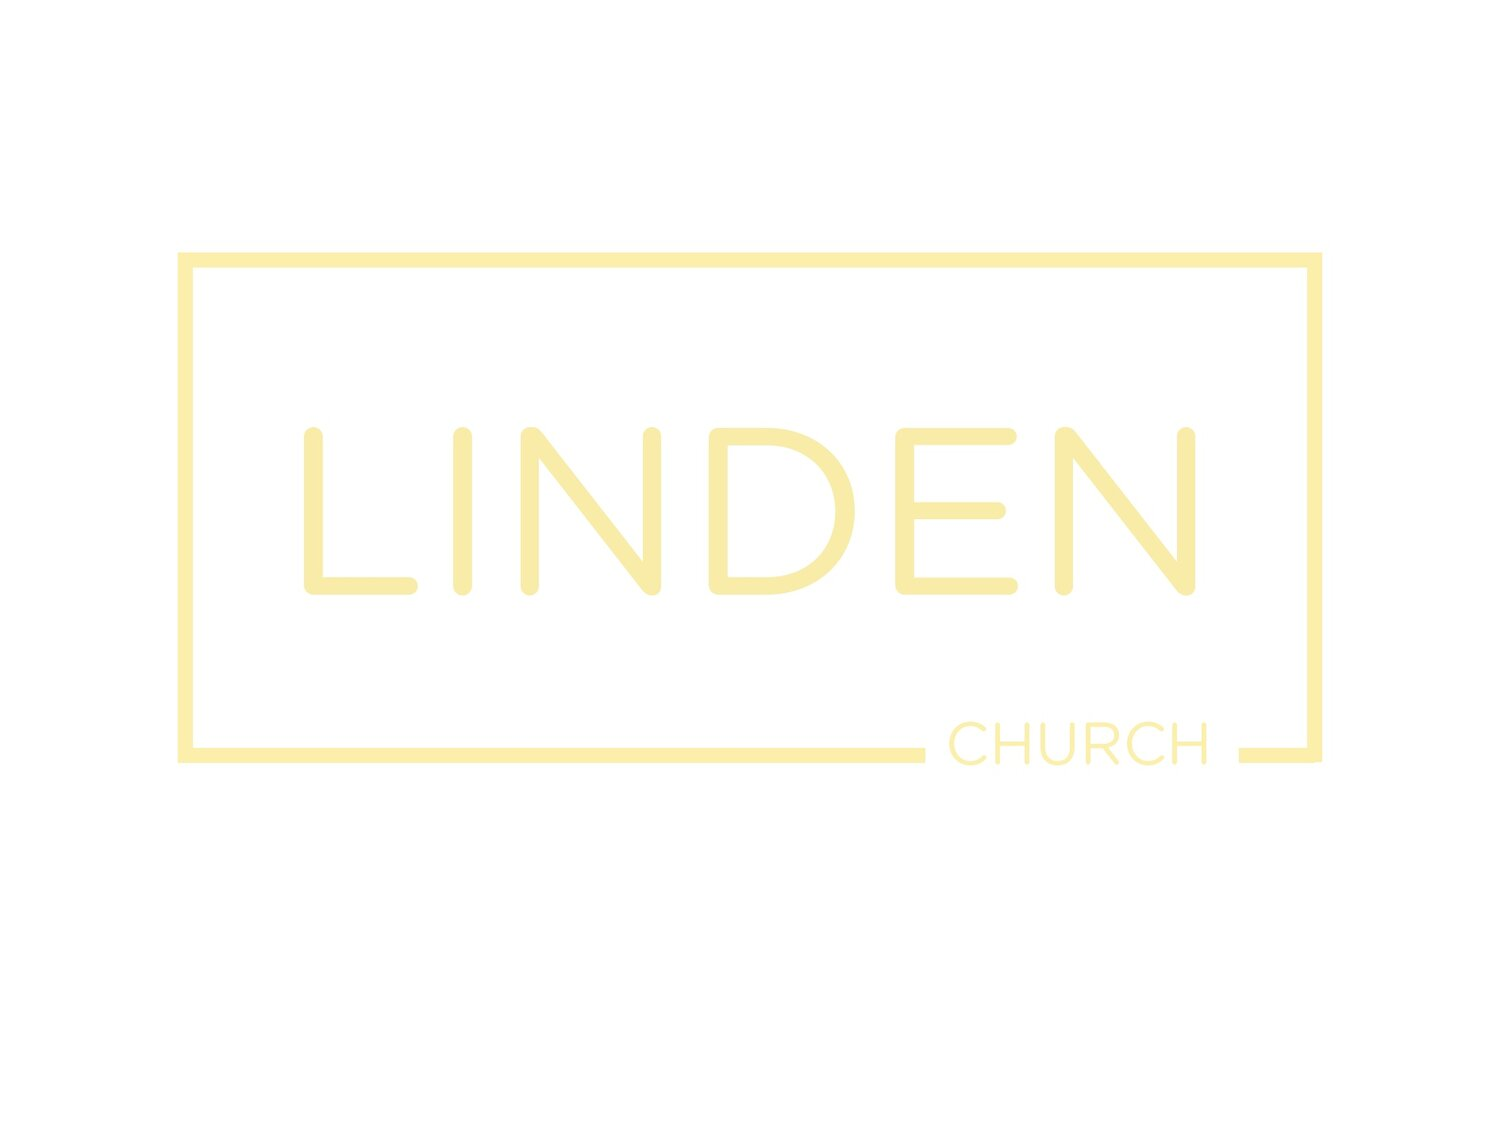 Linden Church